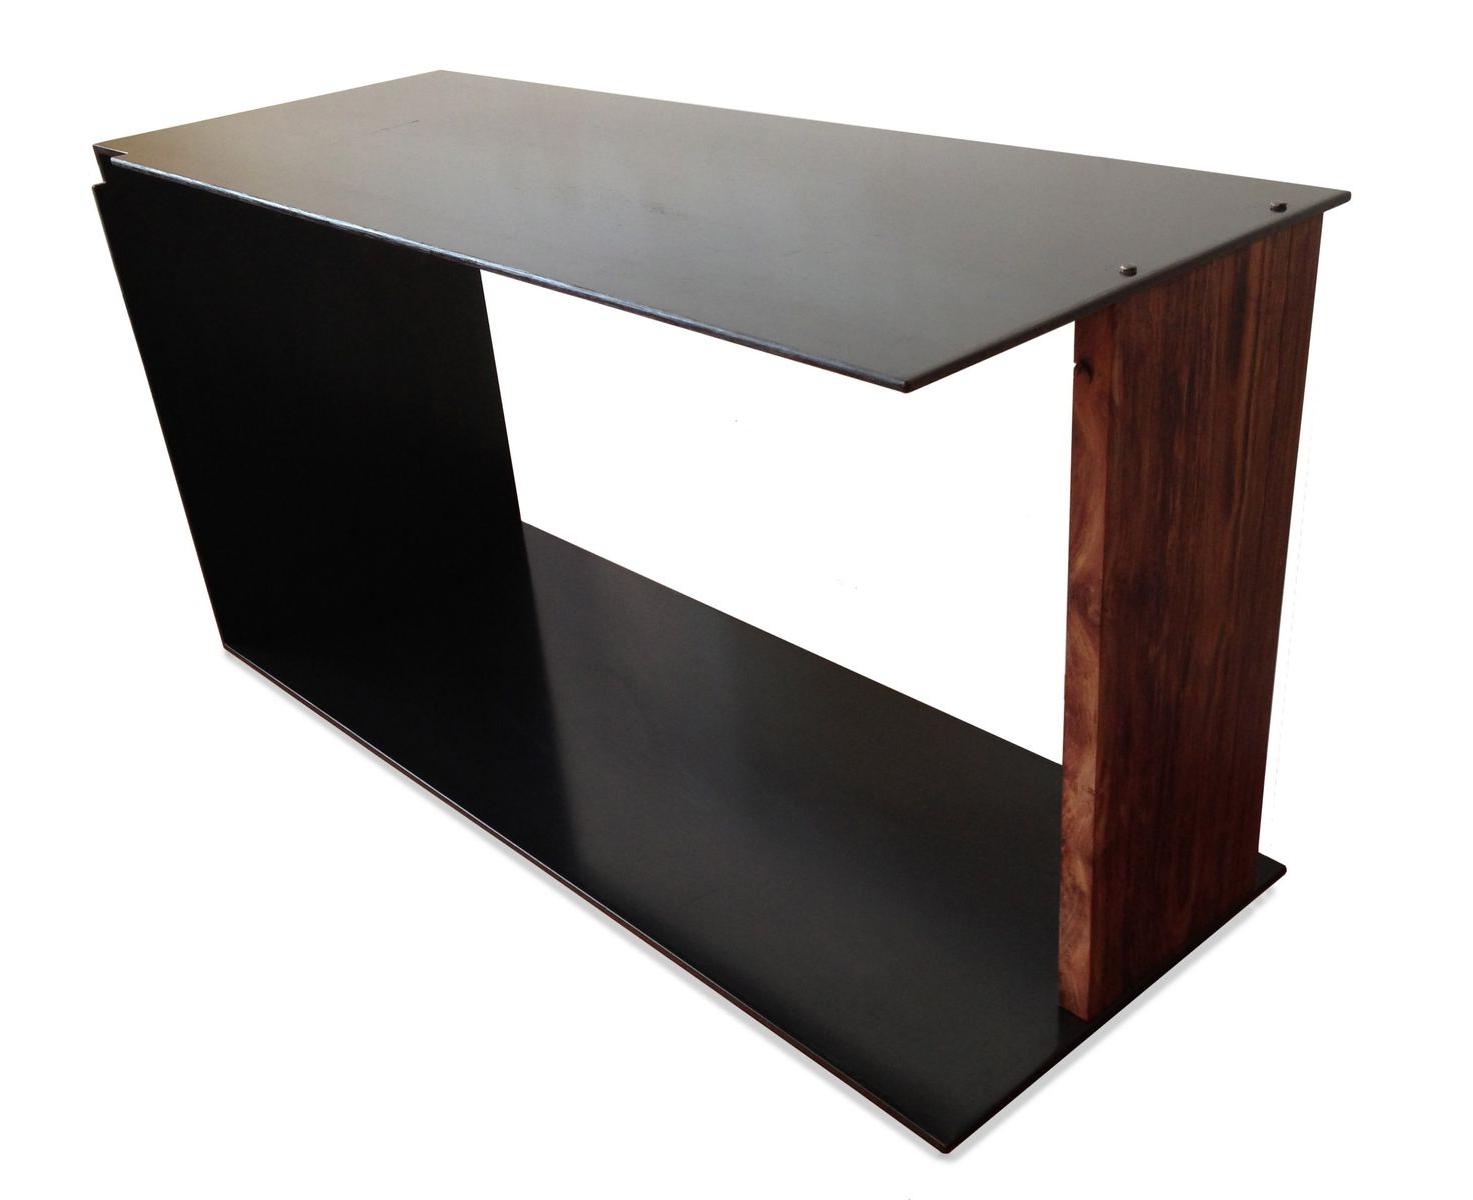 Newest Hand Crafted Szk Metals 'xy' Modern Minimalist Metal Coffee Table Regarding Minimalist Coffee Tables (Gallery 10 of 20)